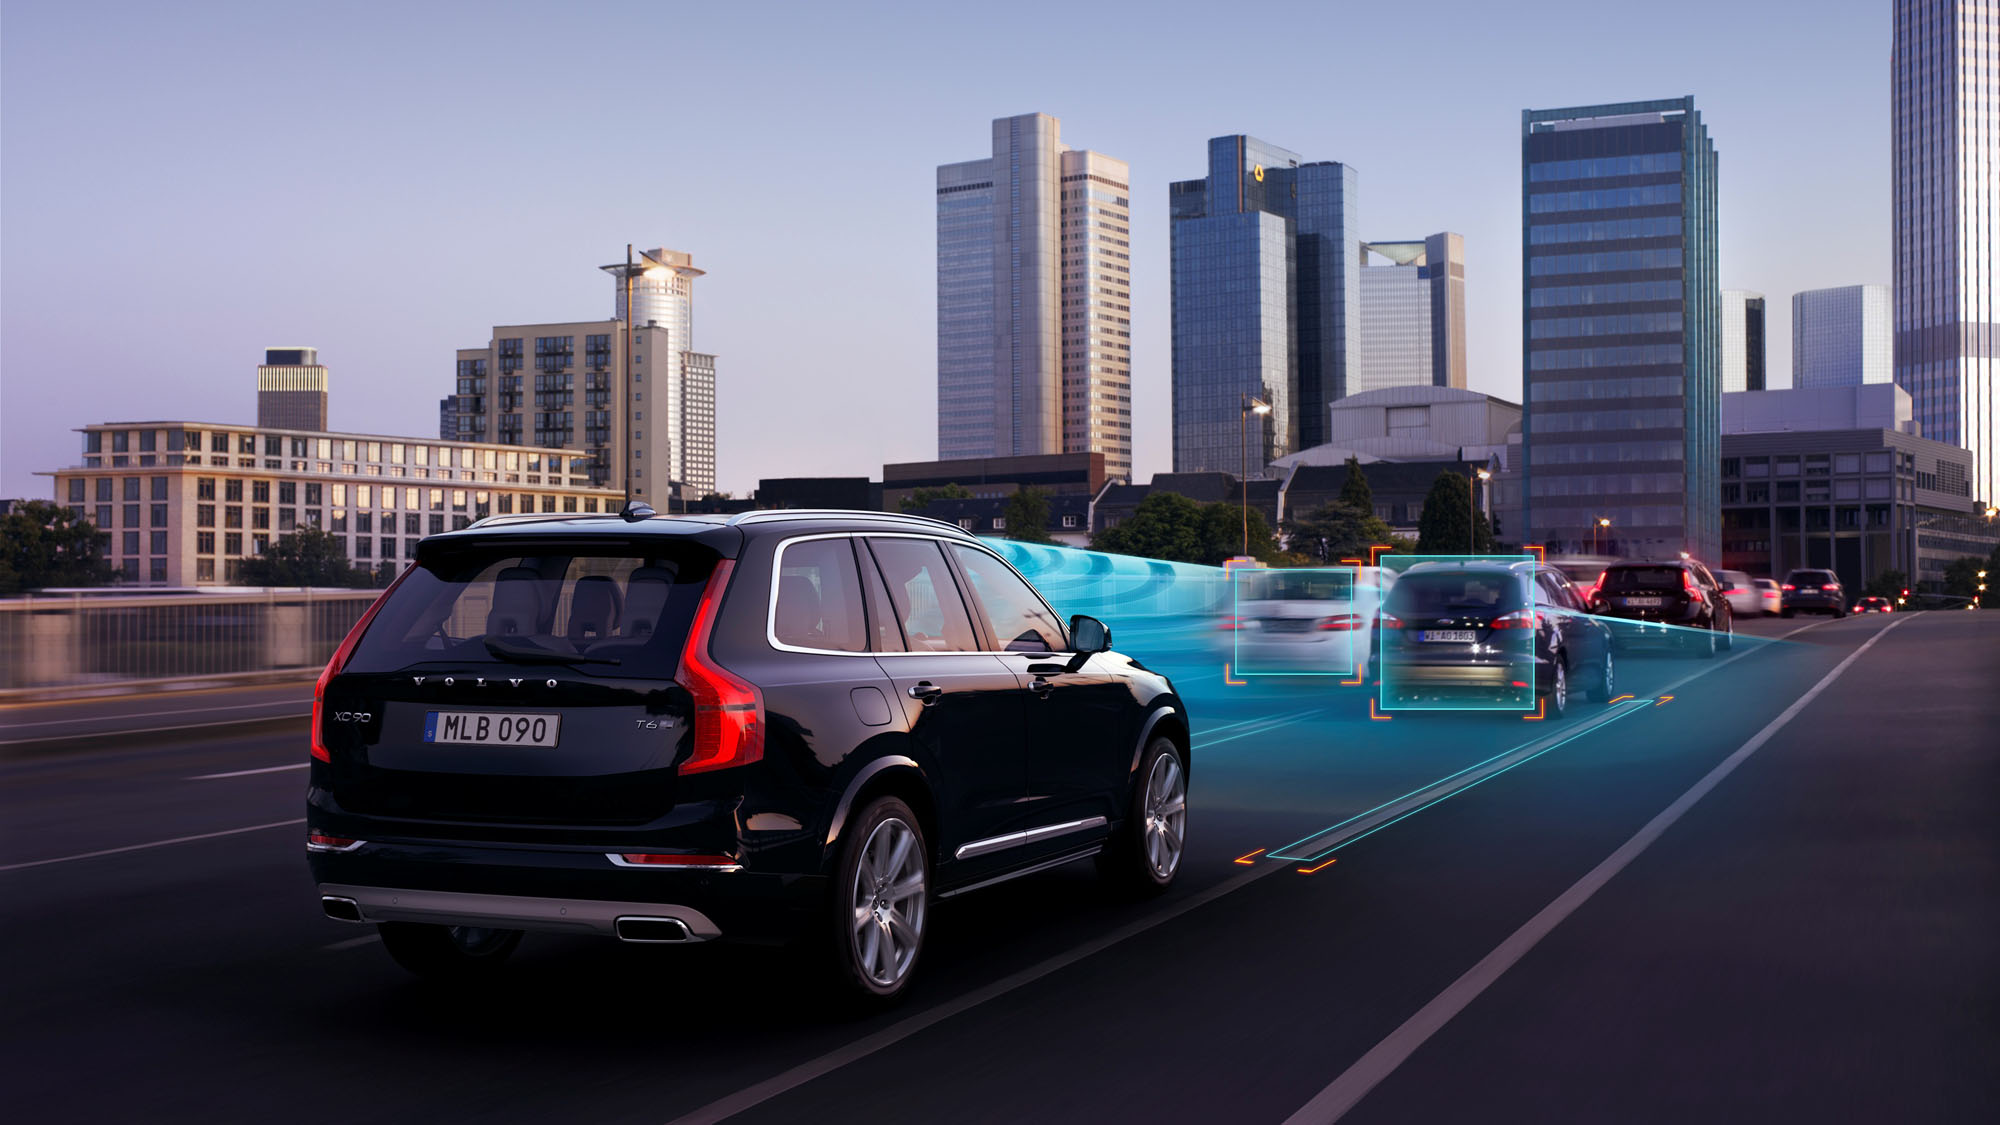 Adaptive Cruise Control with Queue Assist enables safe and comfortable driving by following the vehicle in front in slow-moving queues. Acceleration, braking and steering are controlled automatically.